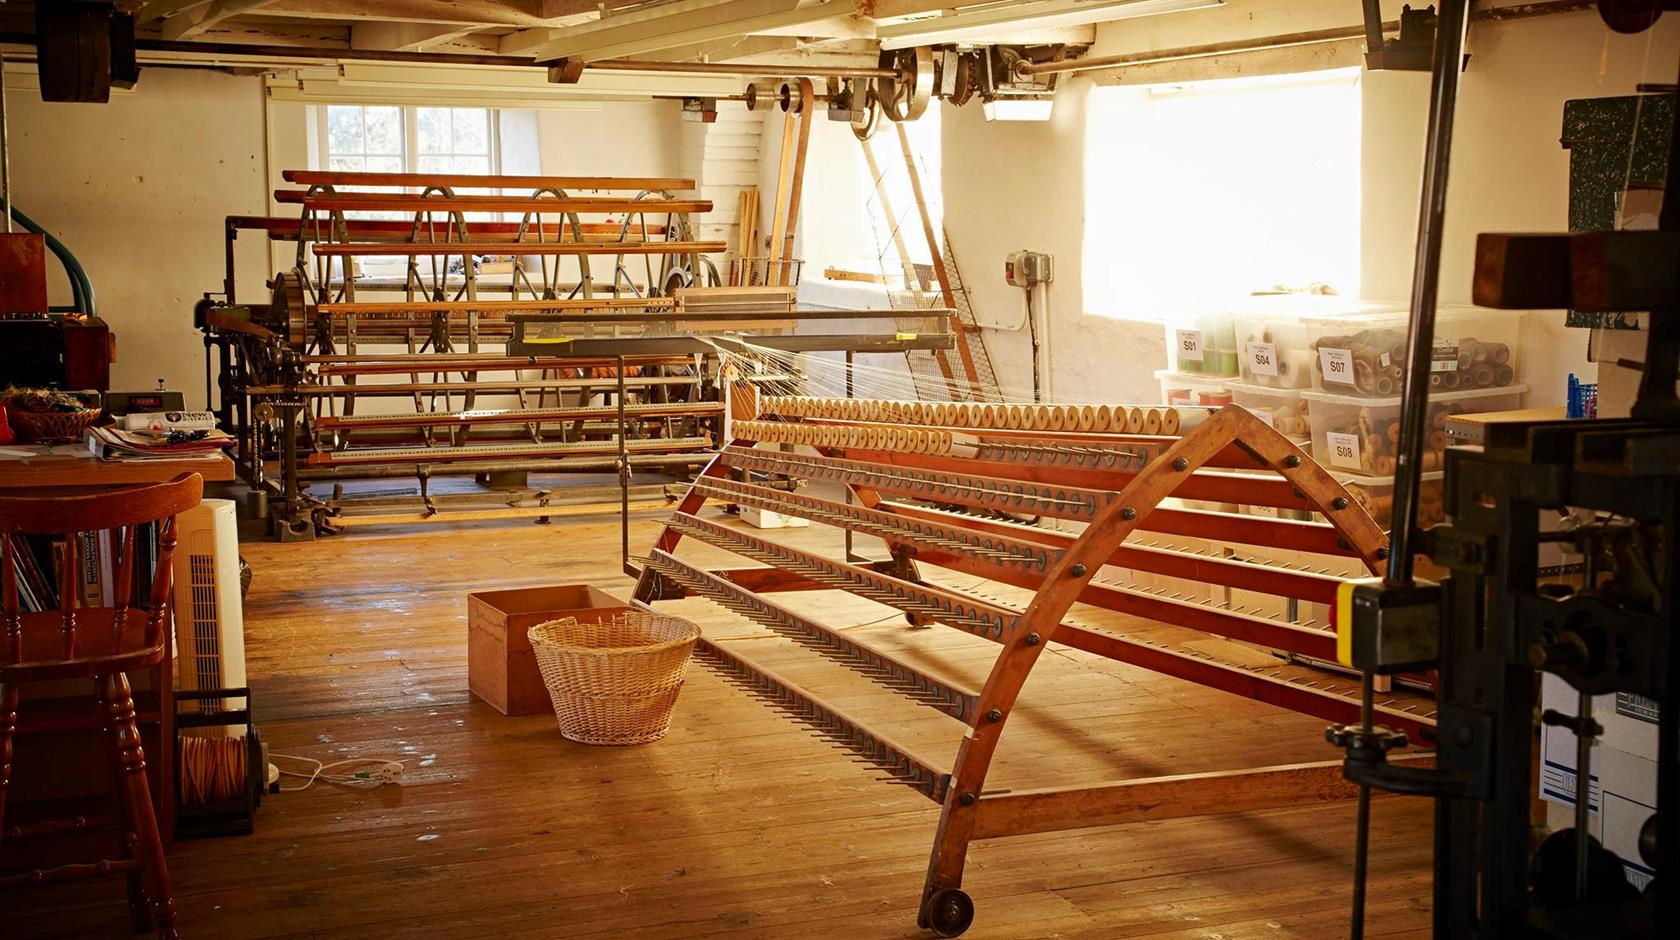 Whitchurch Silk Mill wins £1,000 Movement for Good award